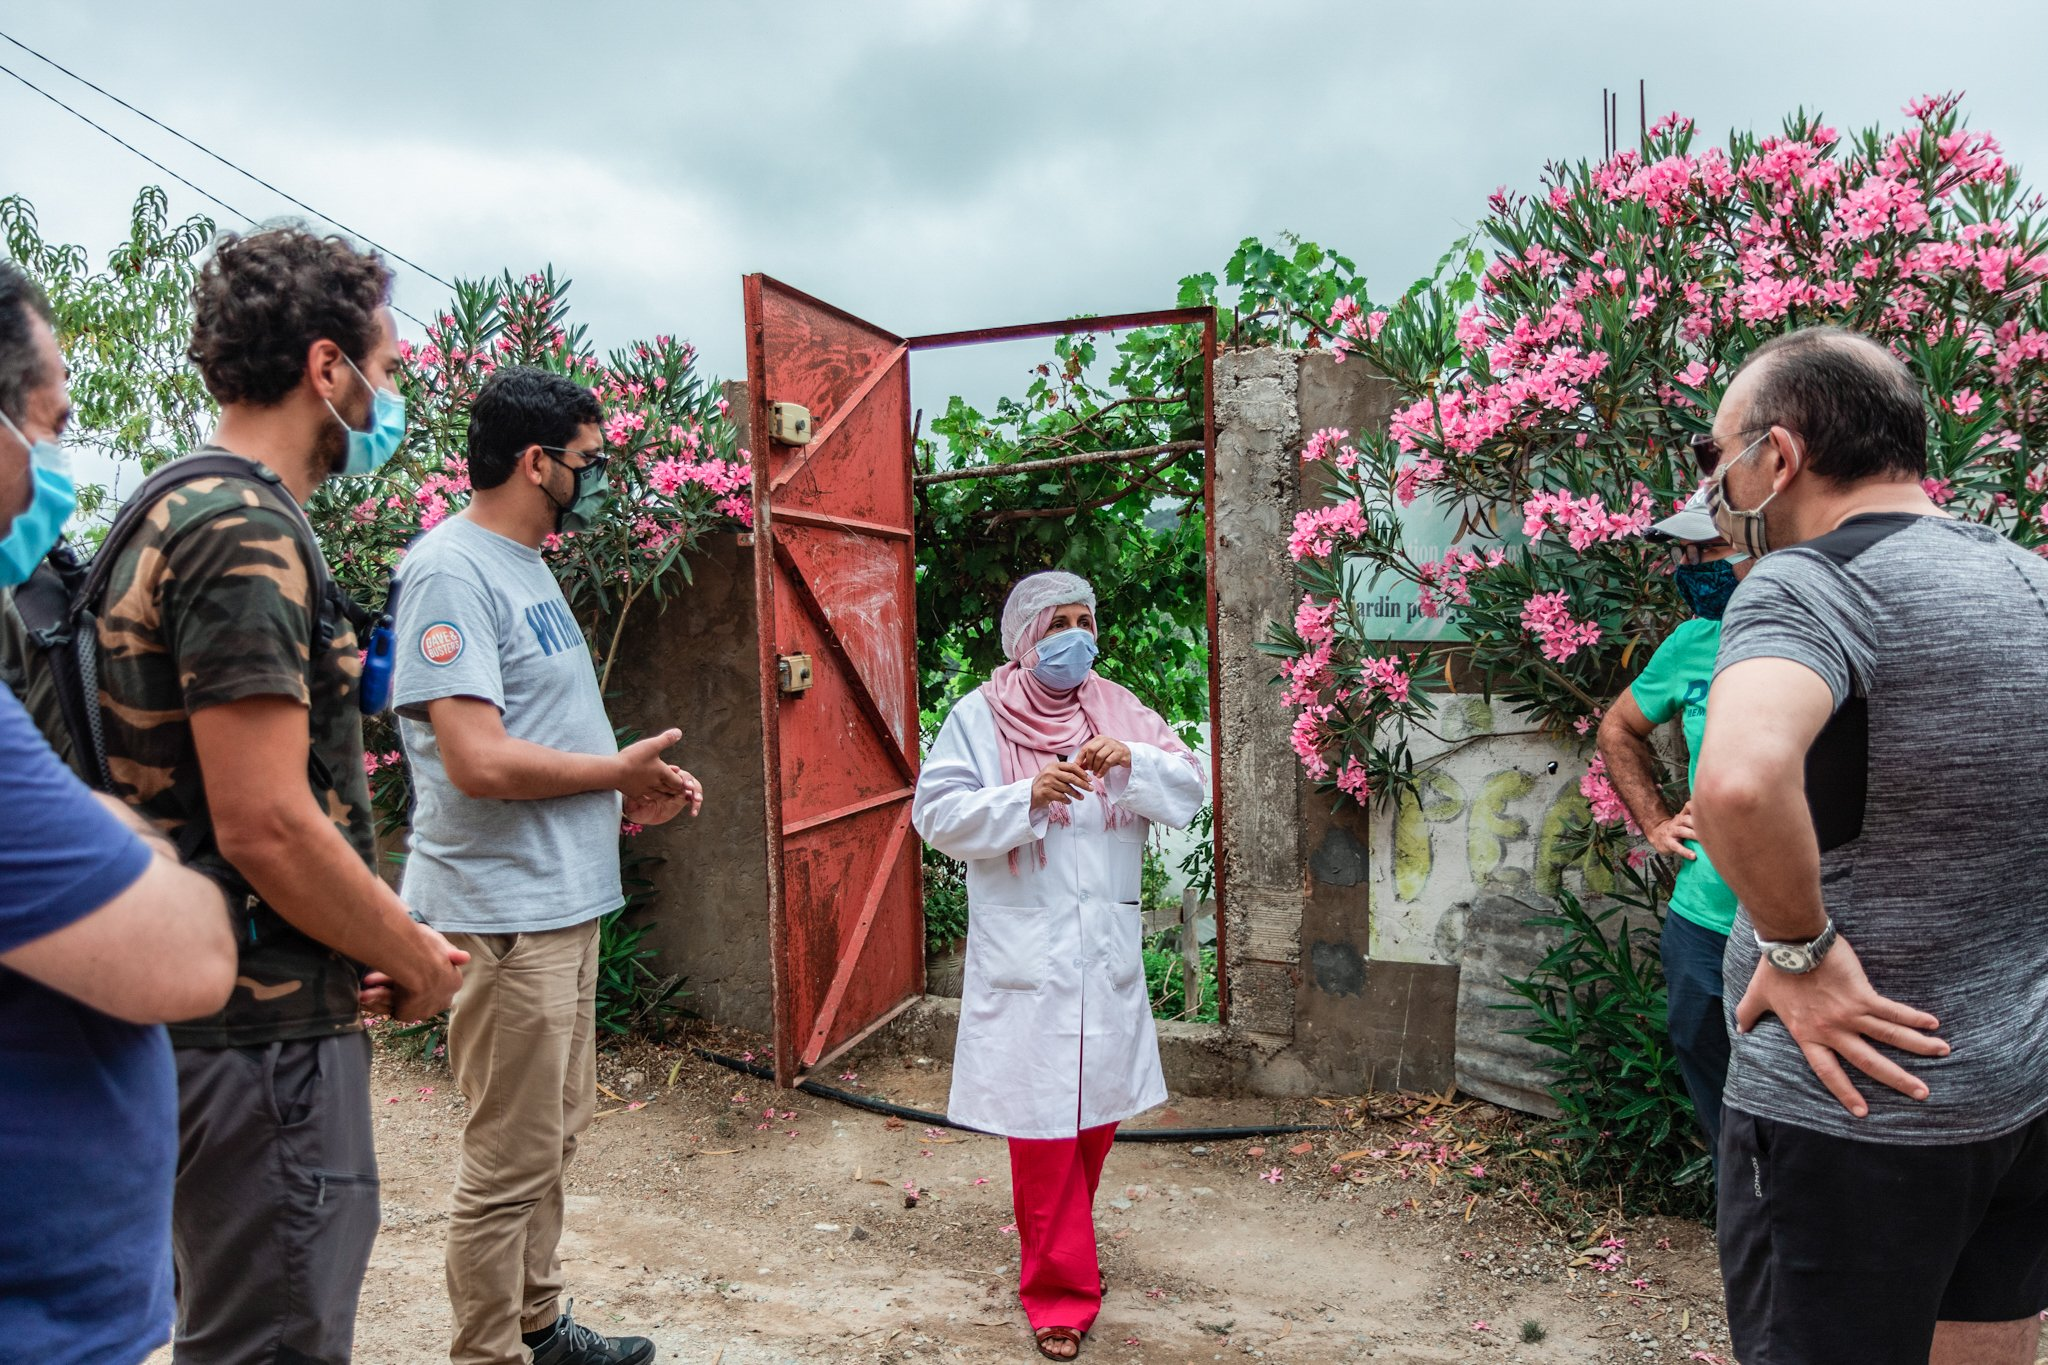 ACEA launches nature discovery day to empower Tunisian women artisans